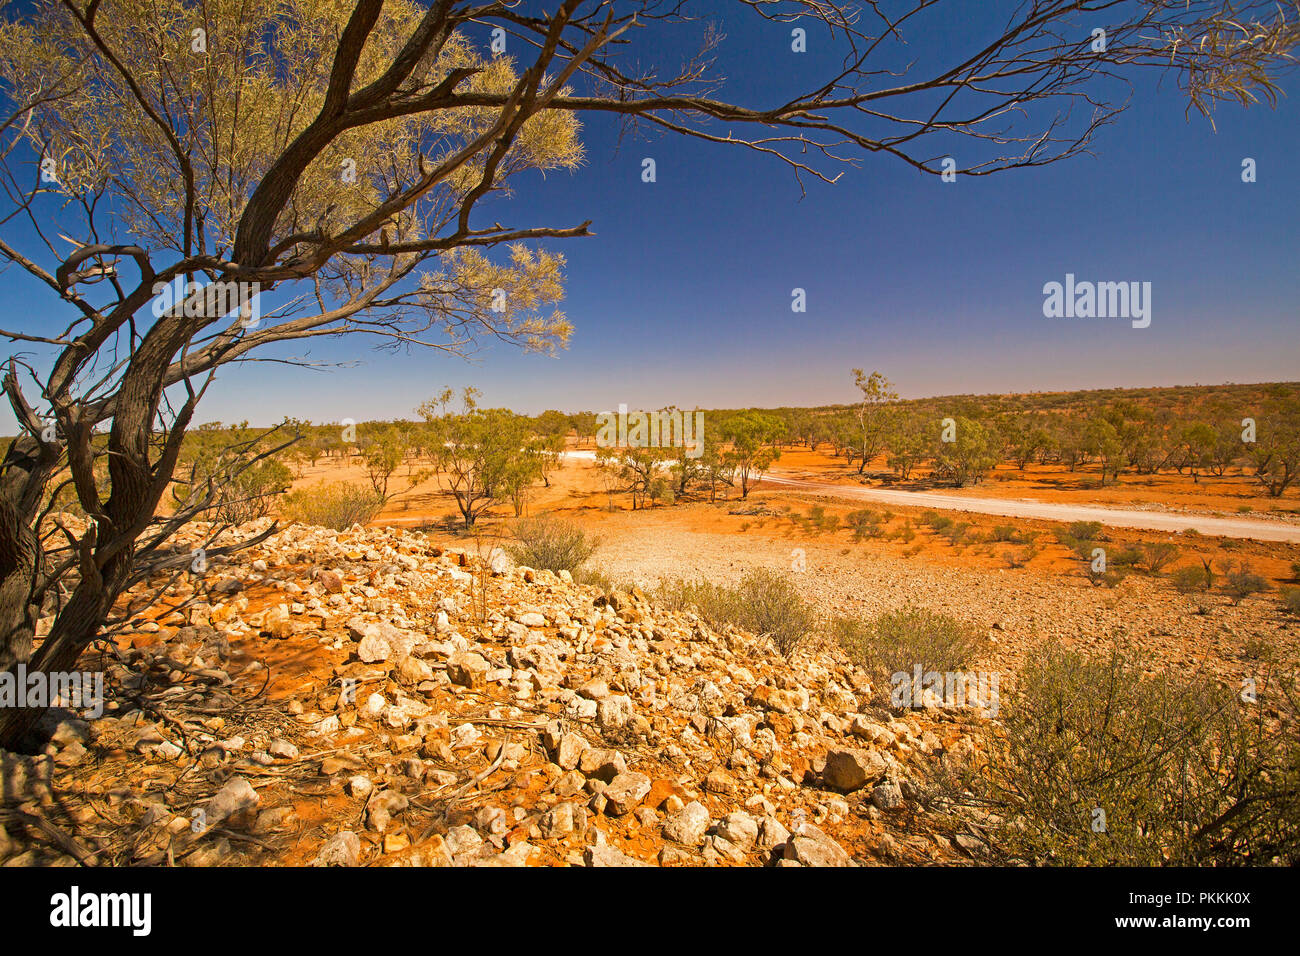 View from stony hill of Australian outback landscape with road slicing across plains, dotted with trees, that stretch to horizon under blue sky in Qld Stock Photo